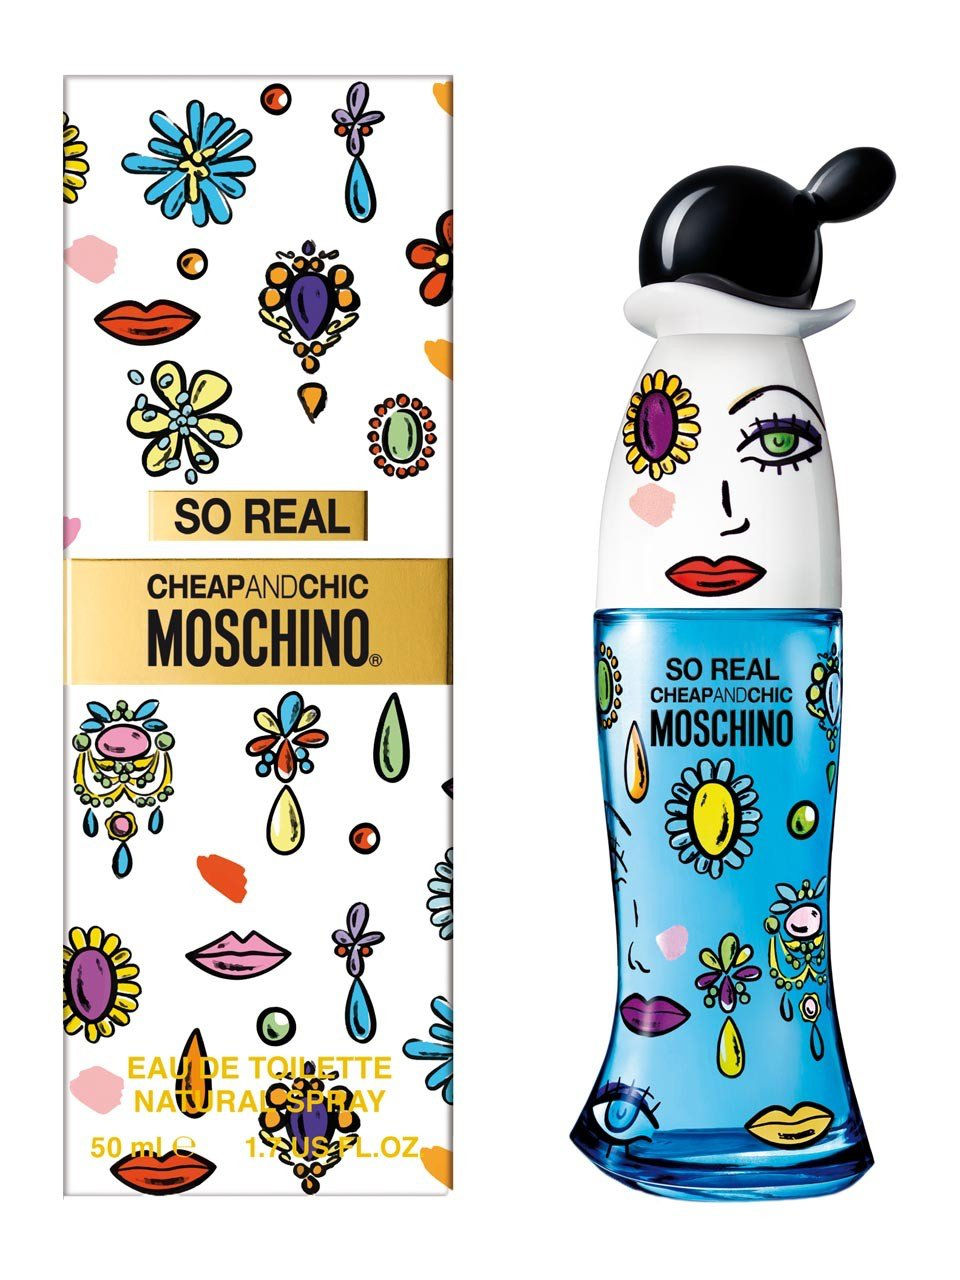 MOSCHINO Вода туалетная женская Moschino So Real Cheap and Chic, спрей 50 мл - Парфюмерия